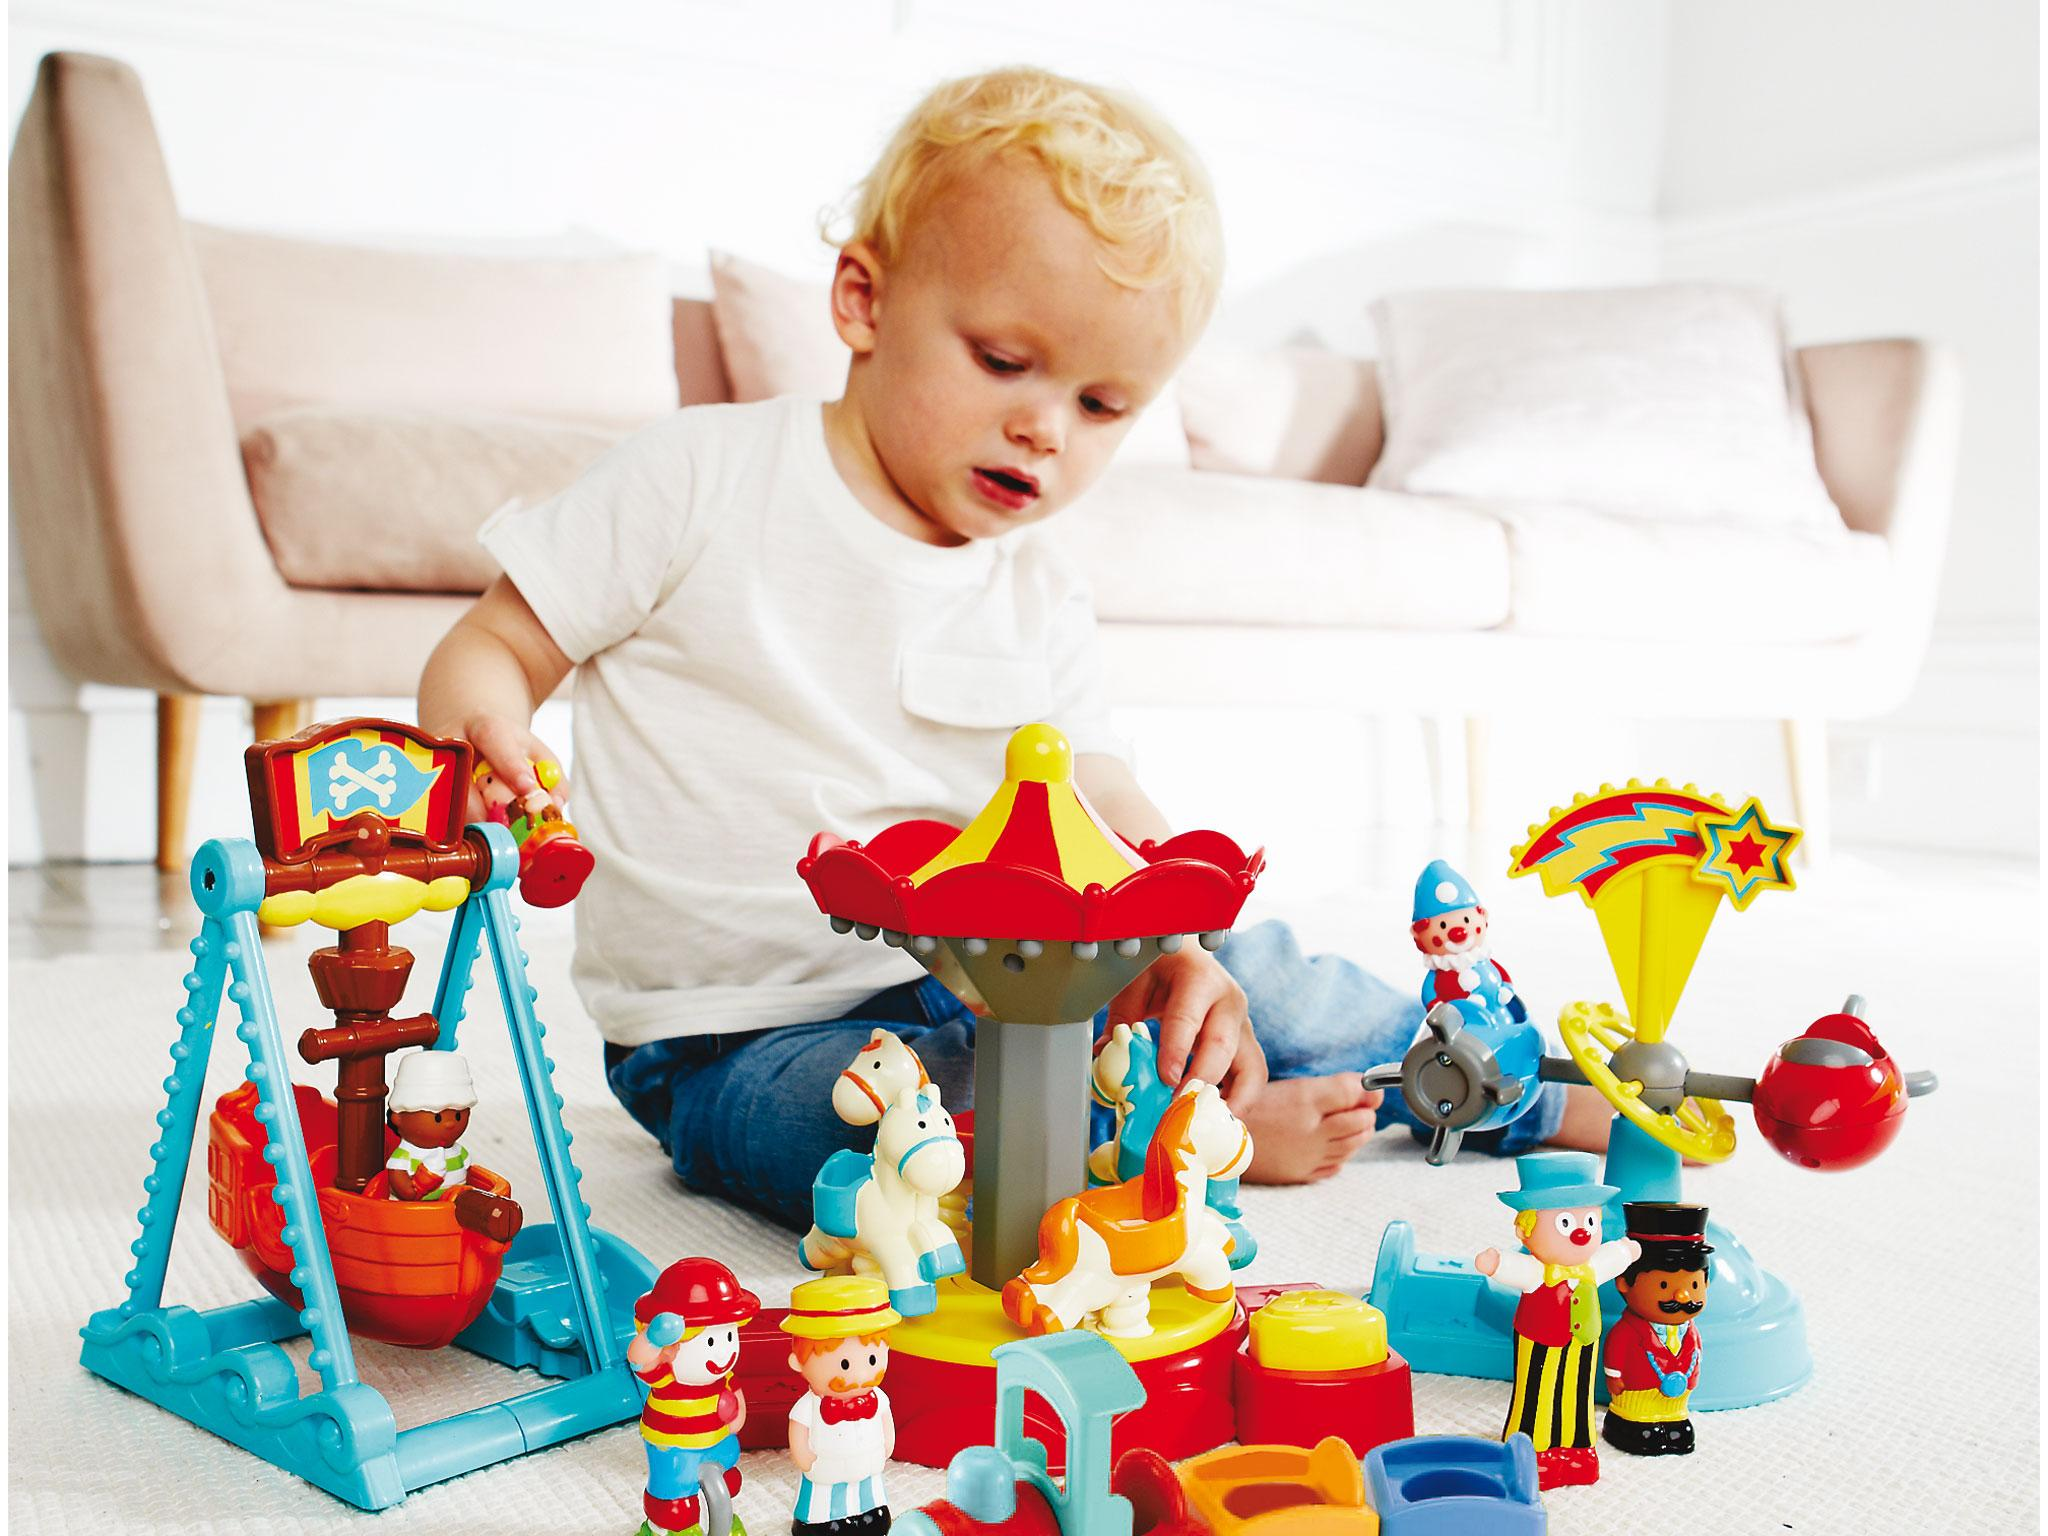 Put Together Toys For Boys : Best gifts for year olds the independent